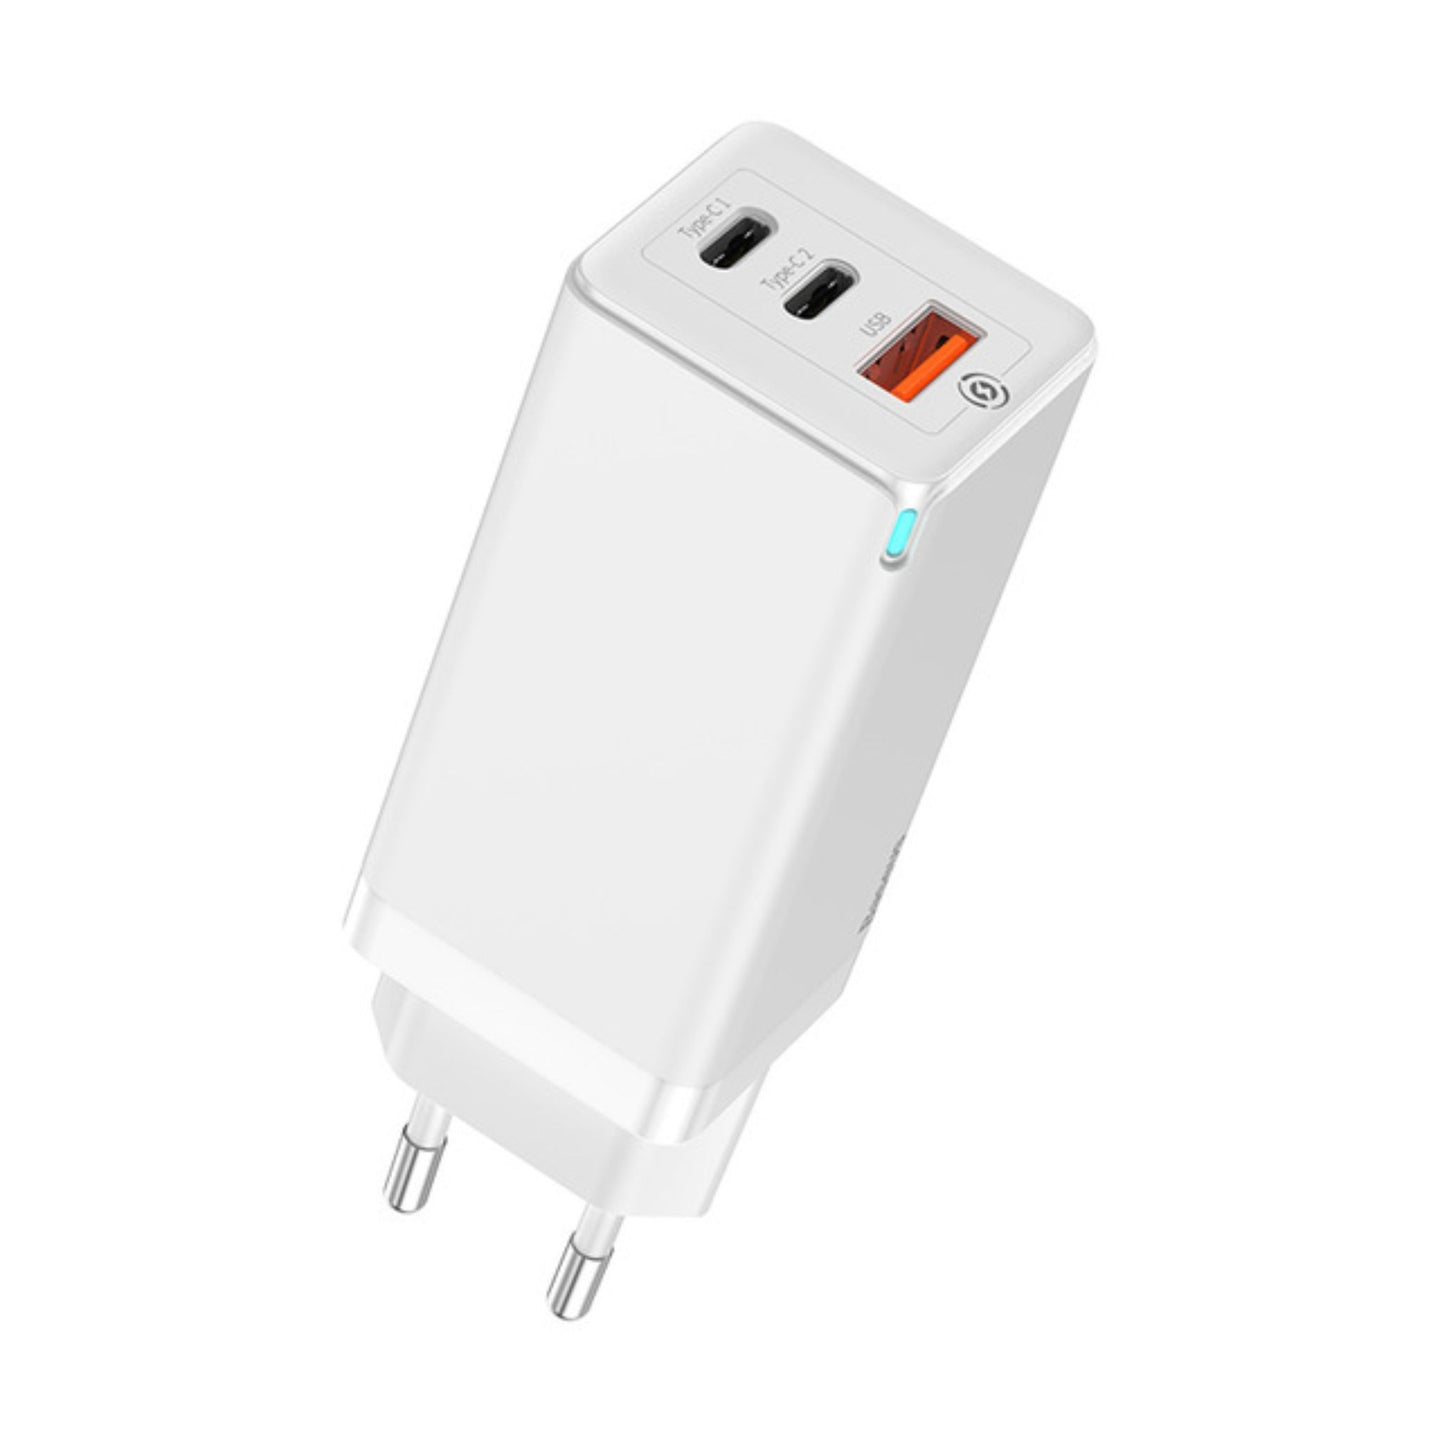 USB Fast Charger - 65W/3A